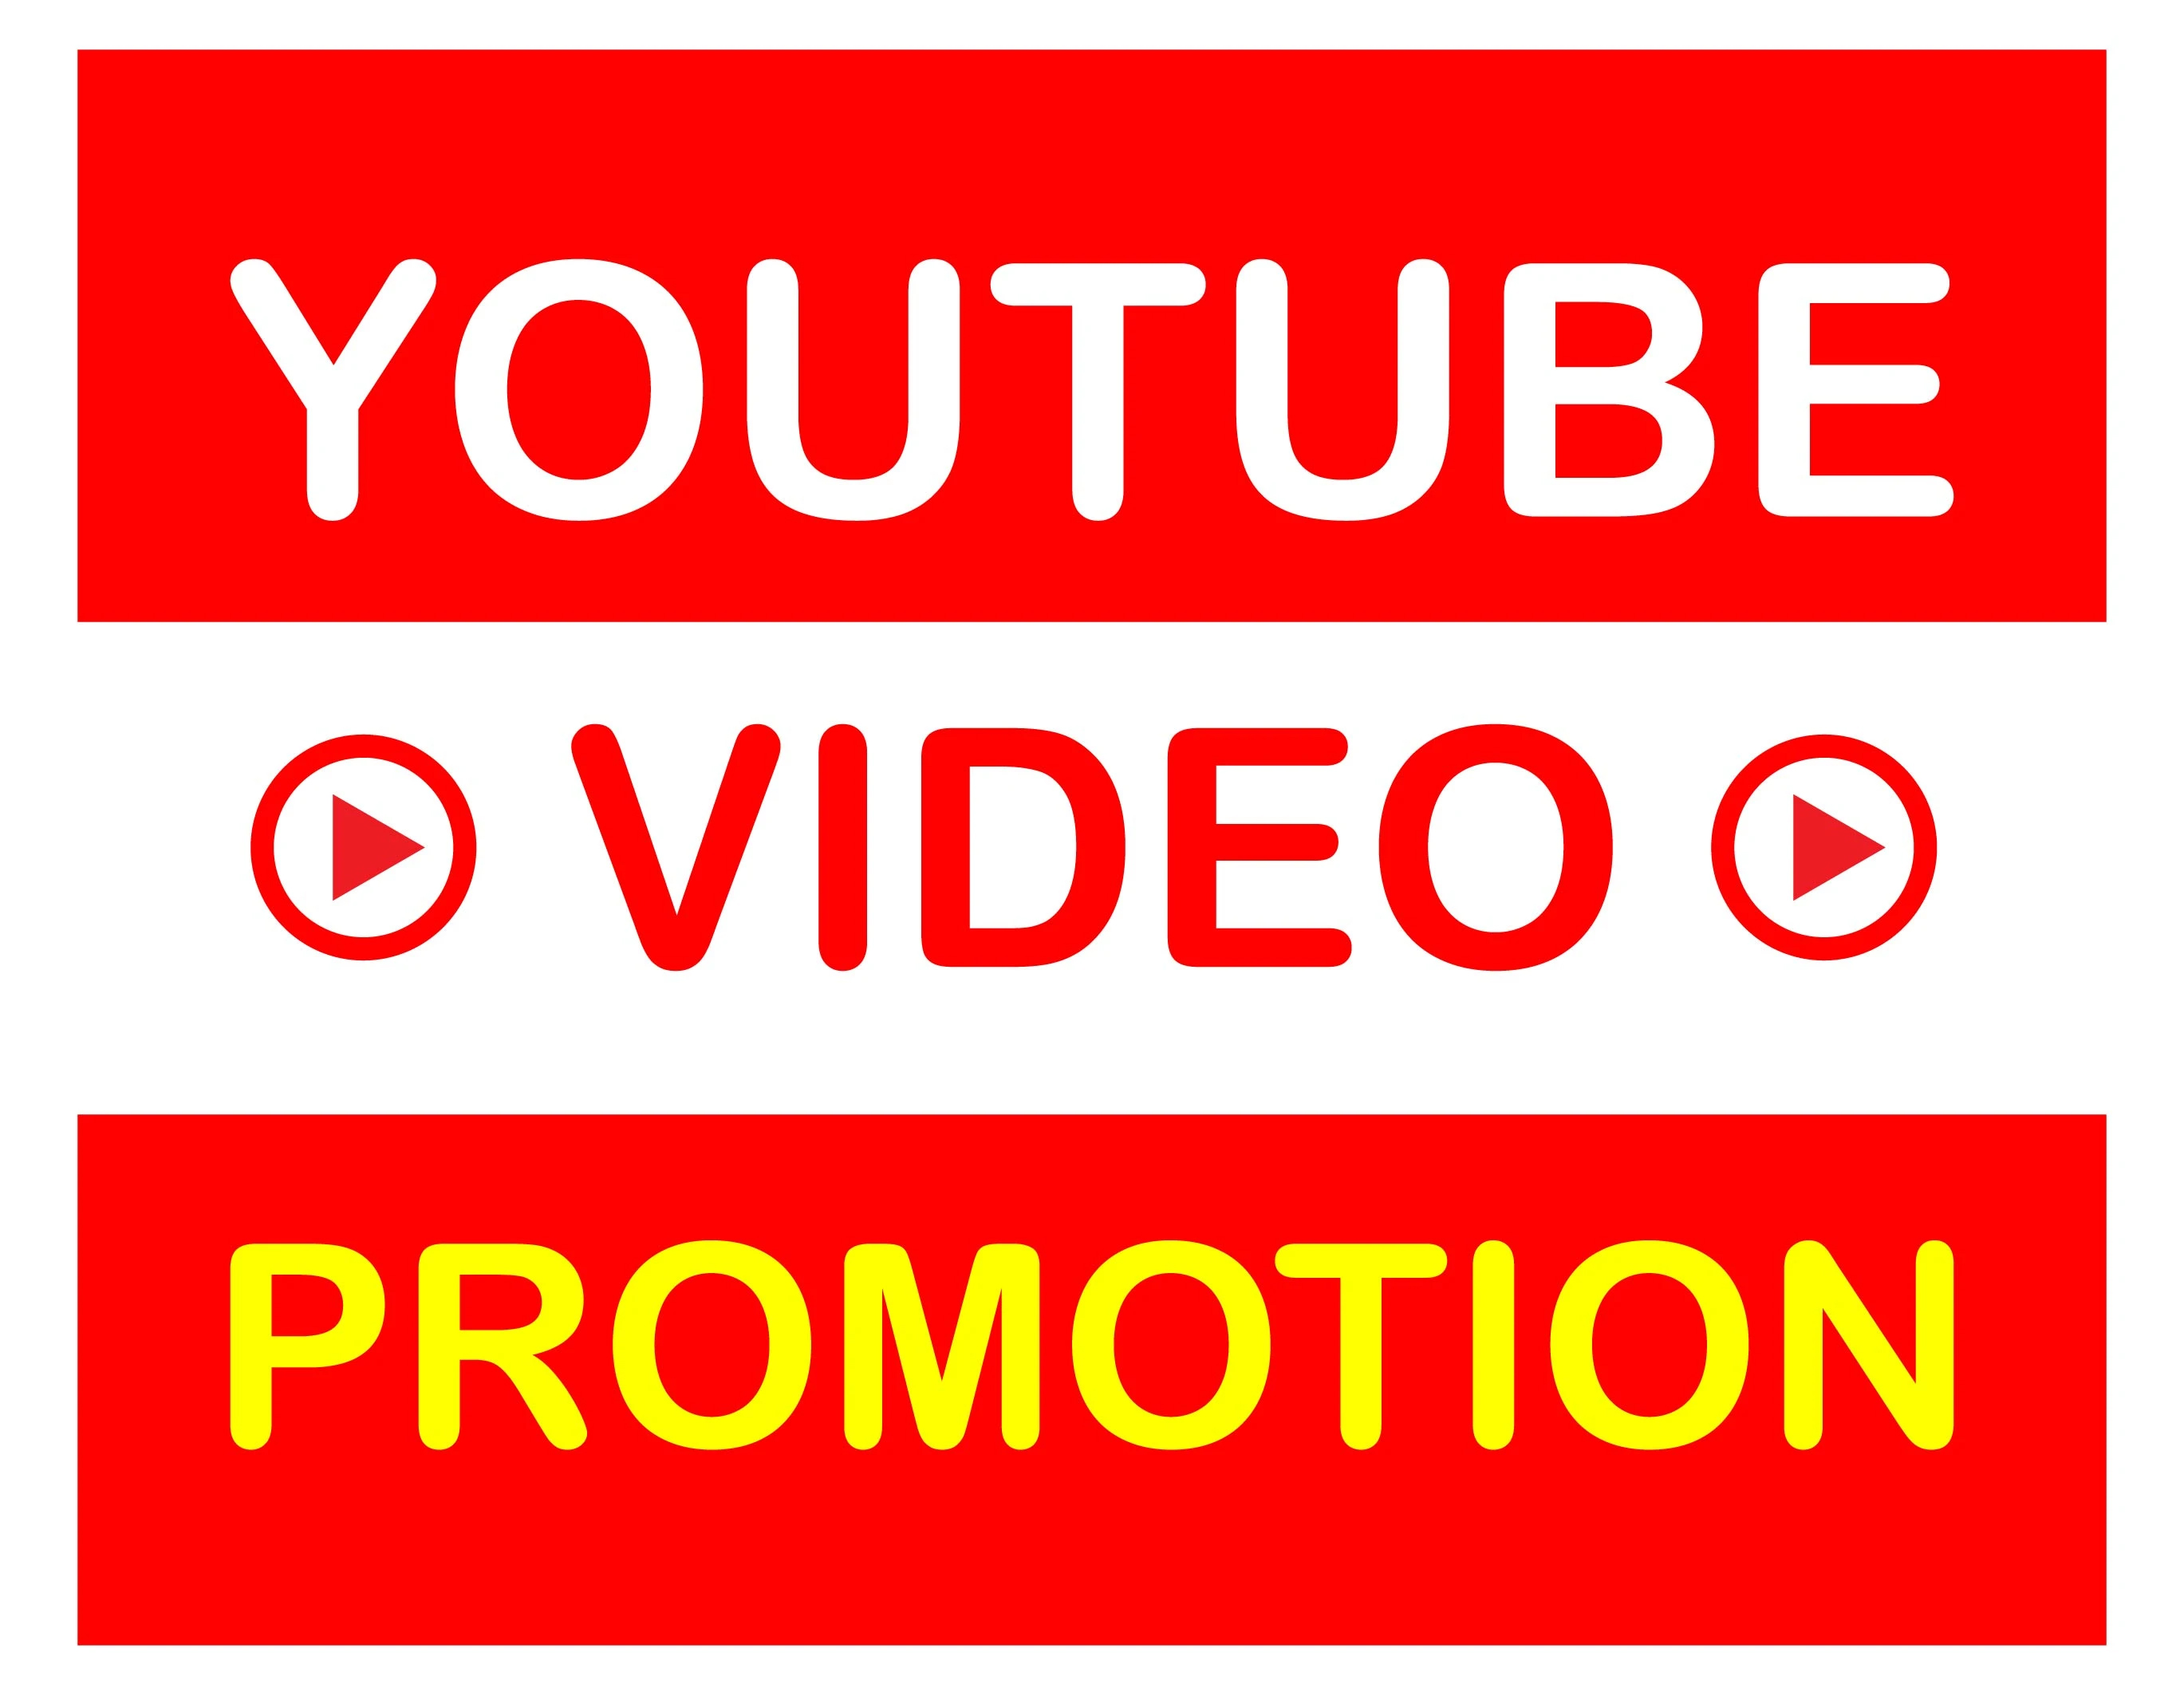 Natural YouTube Video Promotion Pack All In One Super Fast